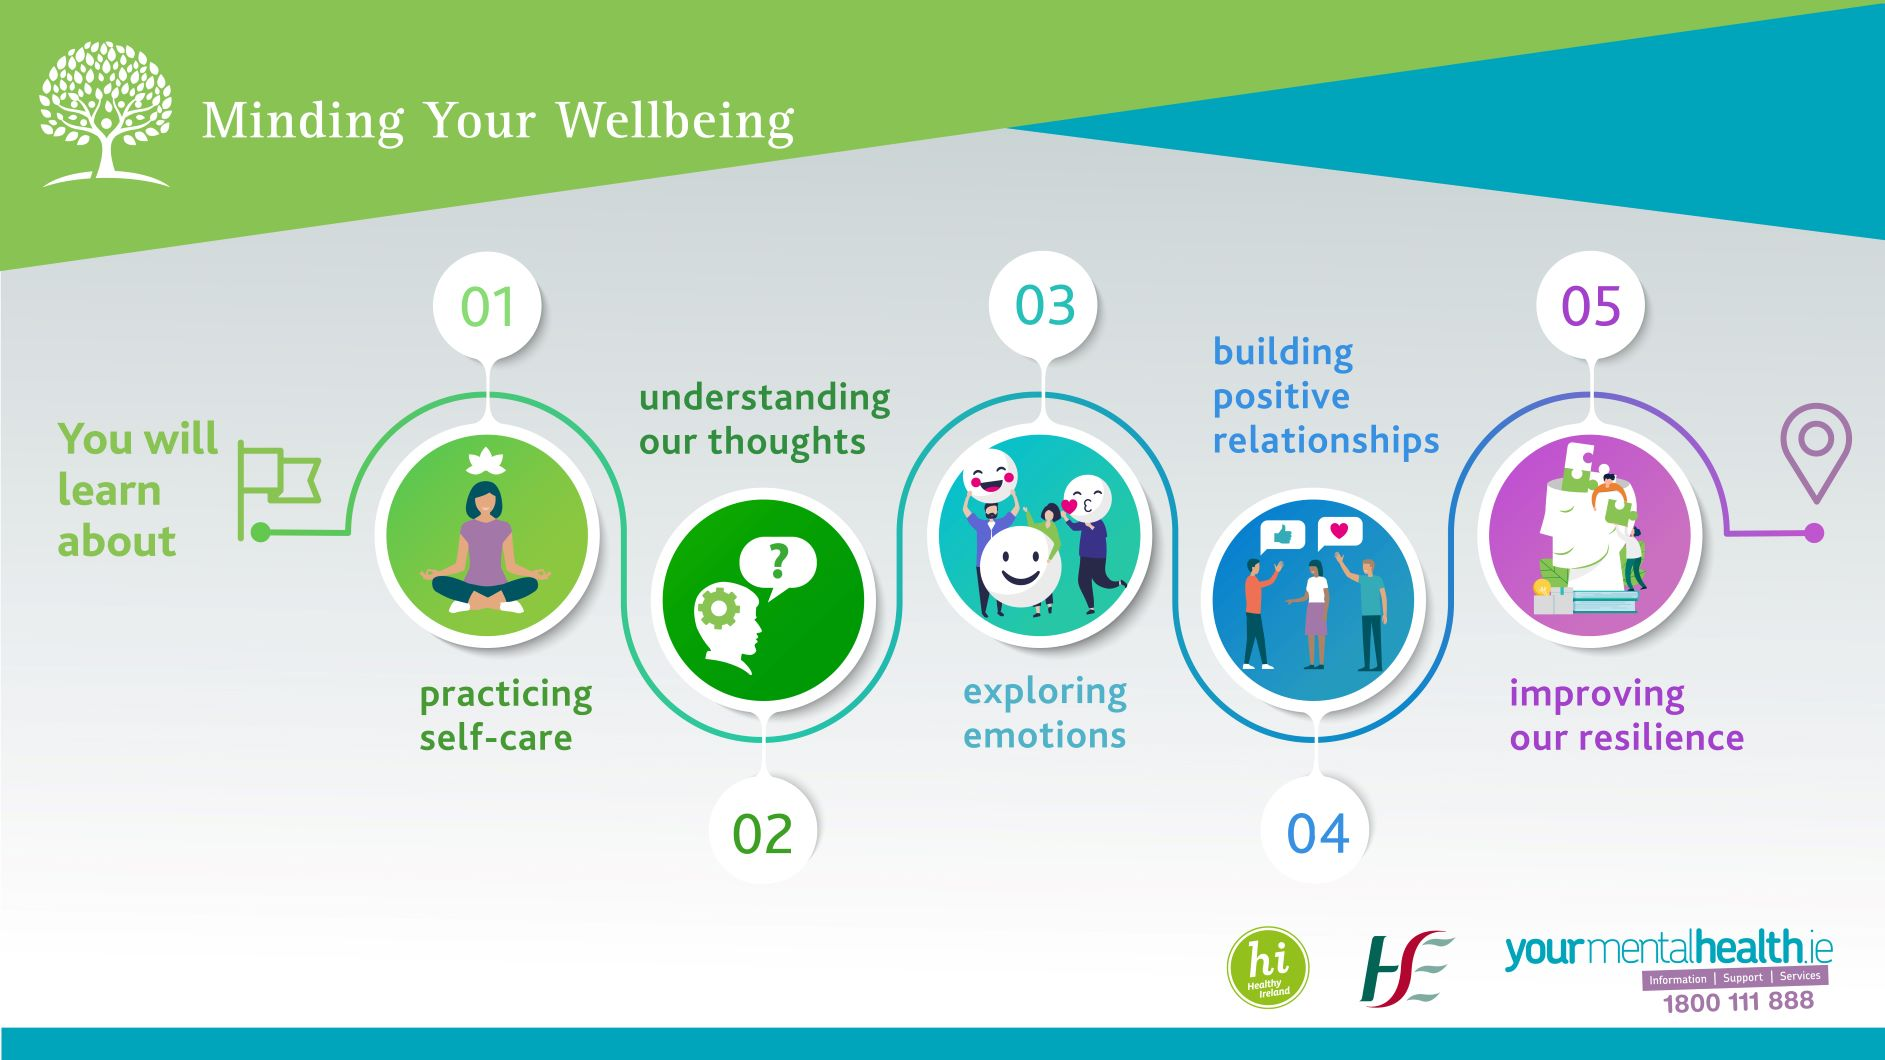 Minding Your Wellbeing